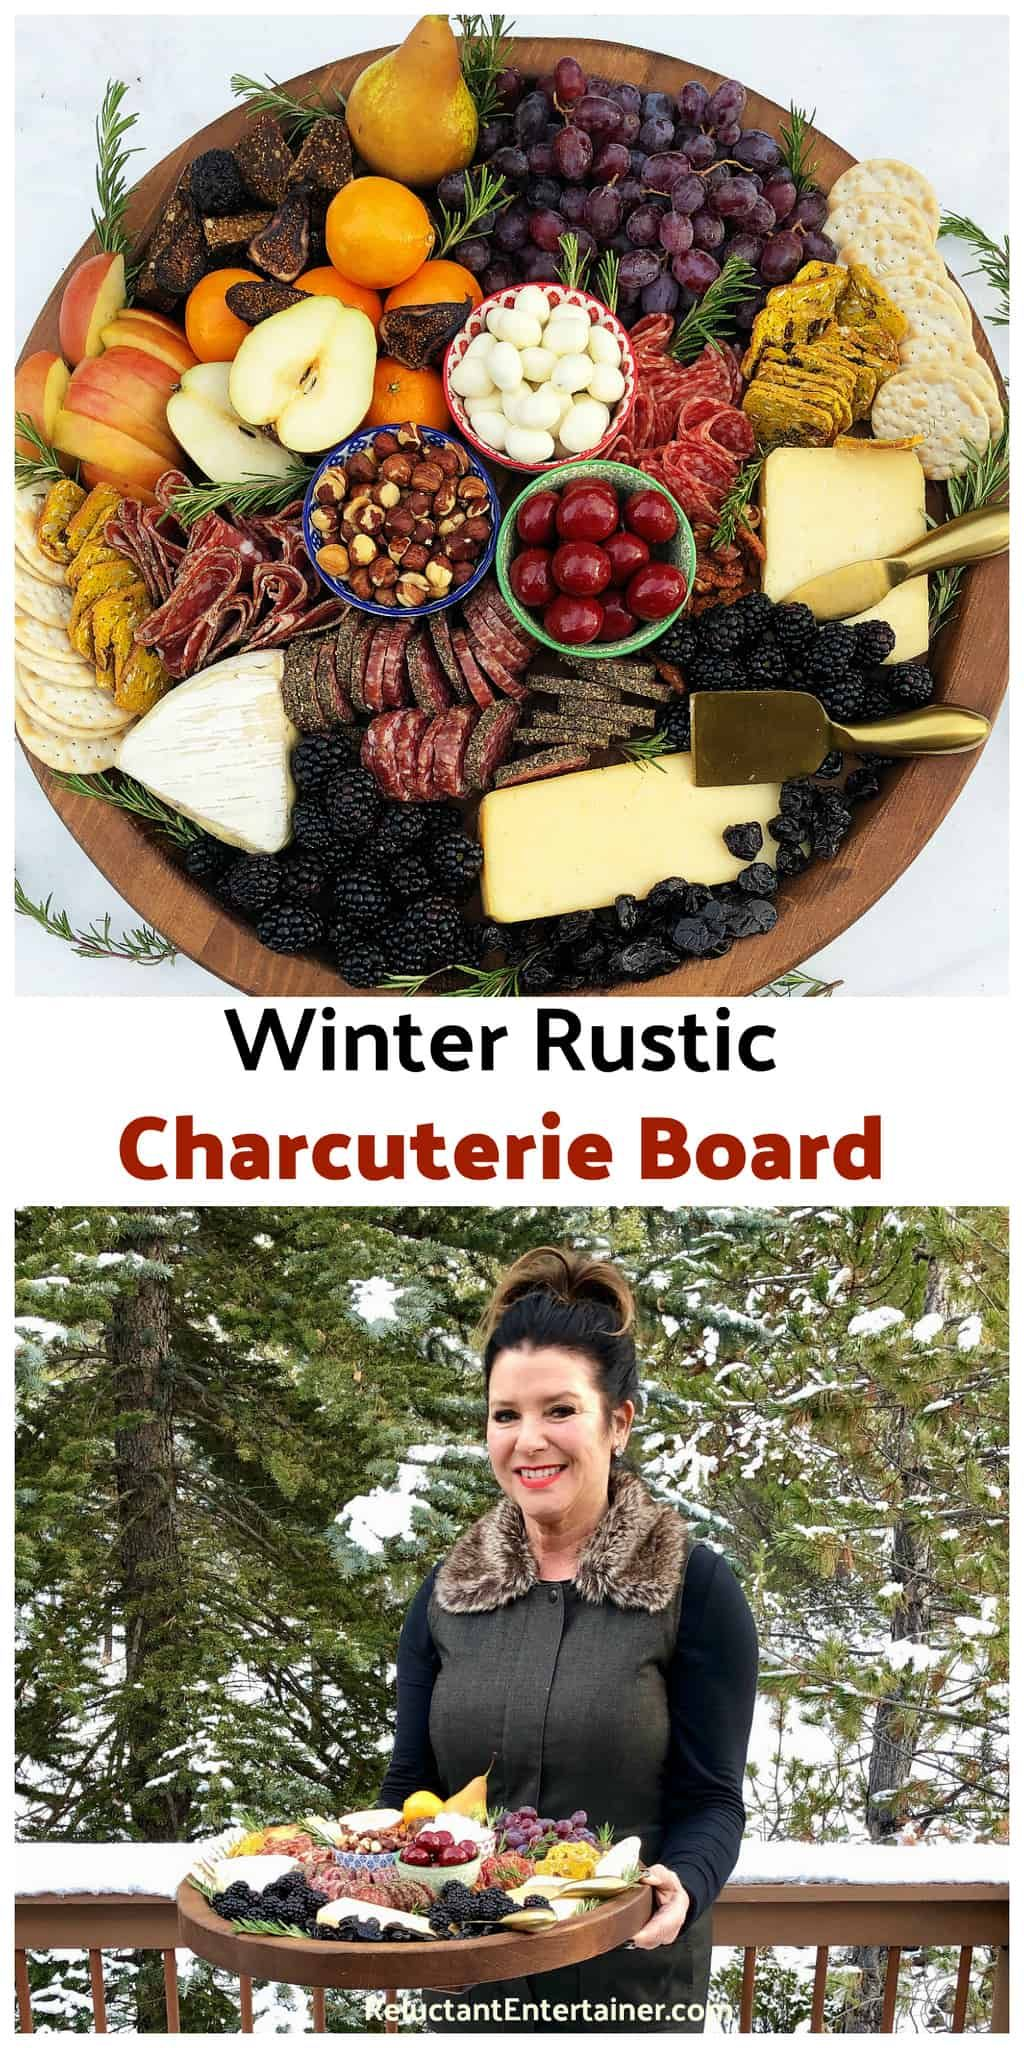 Winter Rustic Charcuterie Board